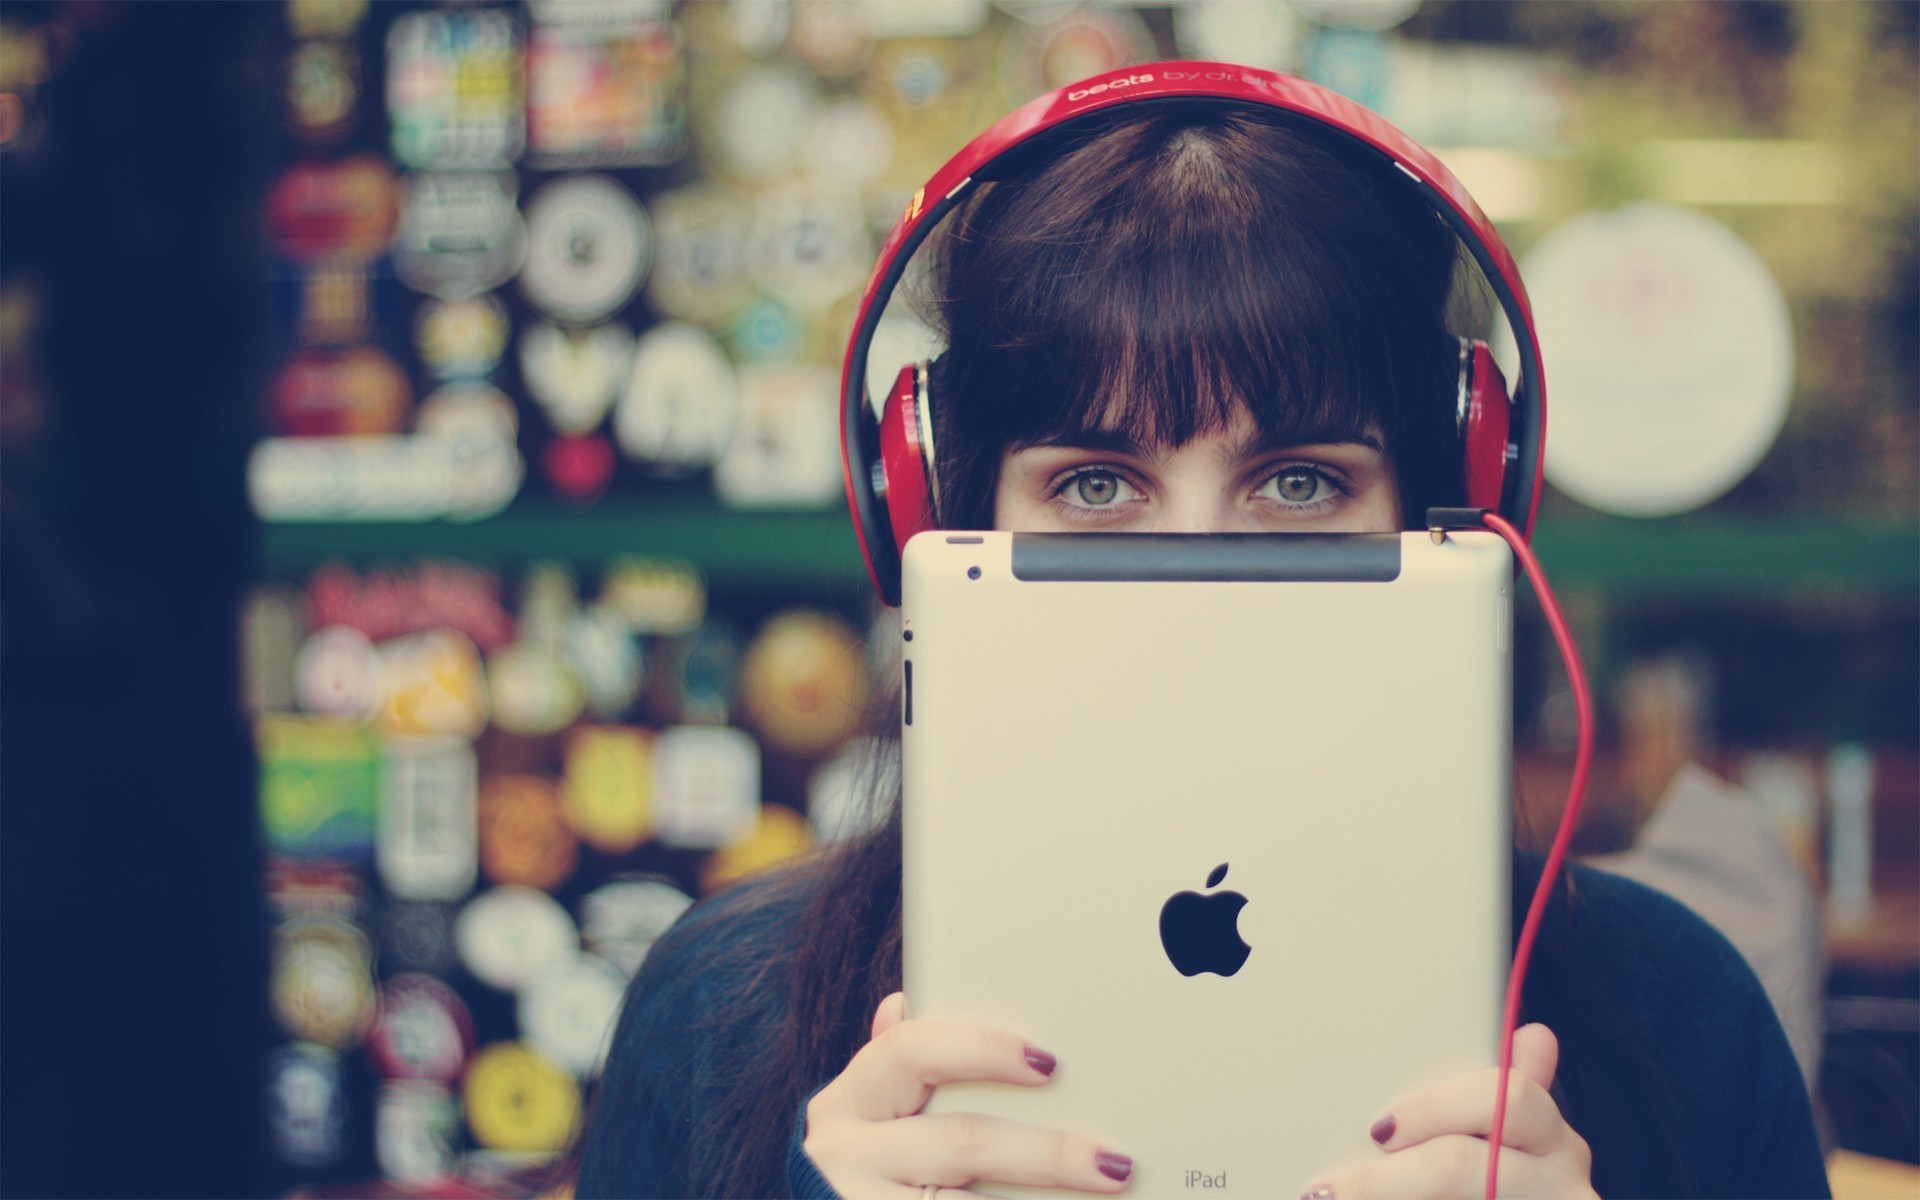 Hi Tech Girl Headphones Ipad Apple Bokeh Photo Vintage Hd